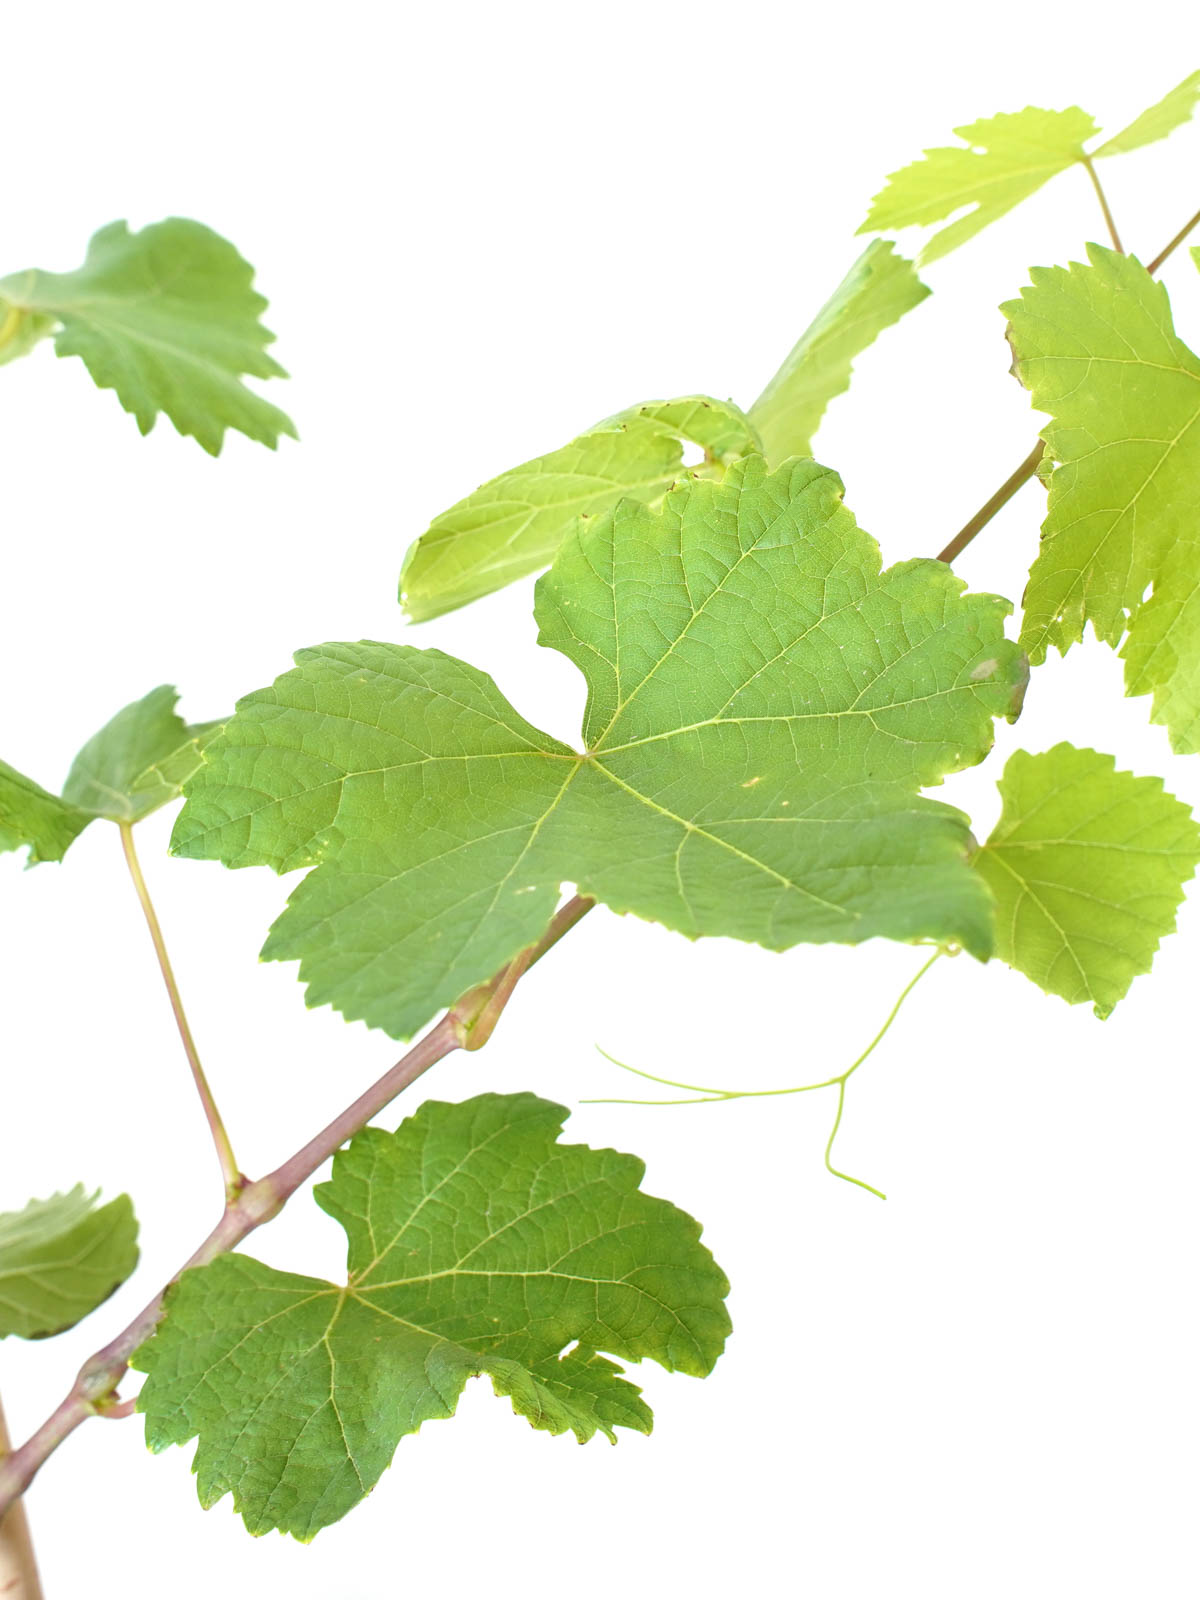 Grapes Anab Outdoor Plants Fruit Plants